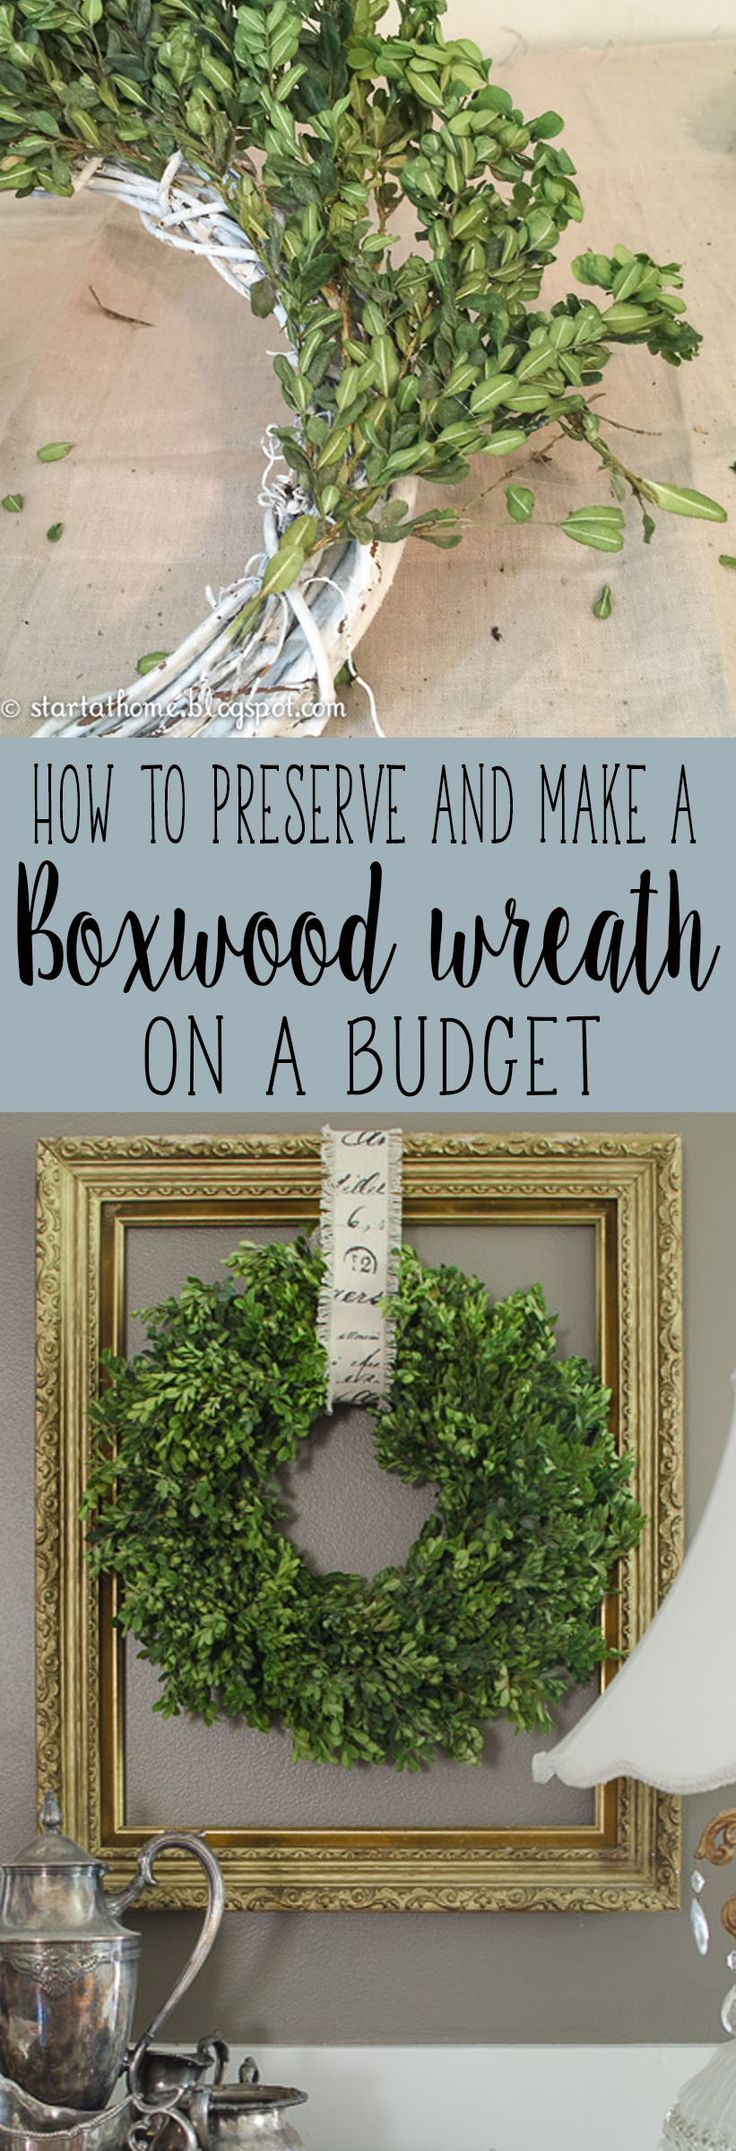 17 best images about wreaths on pinterest summer wreath for Furniture 63385